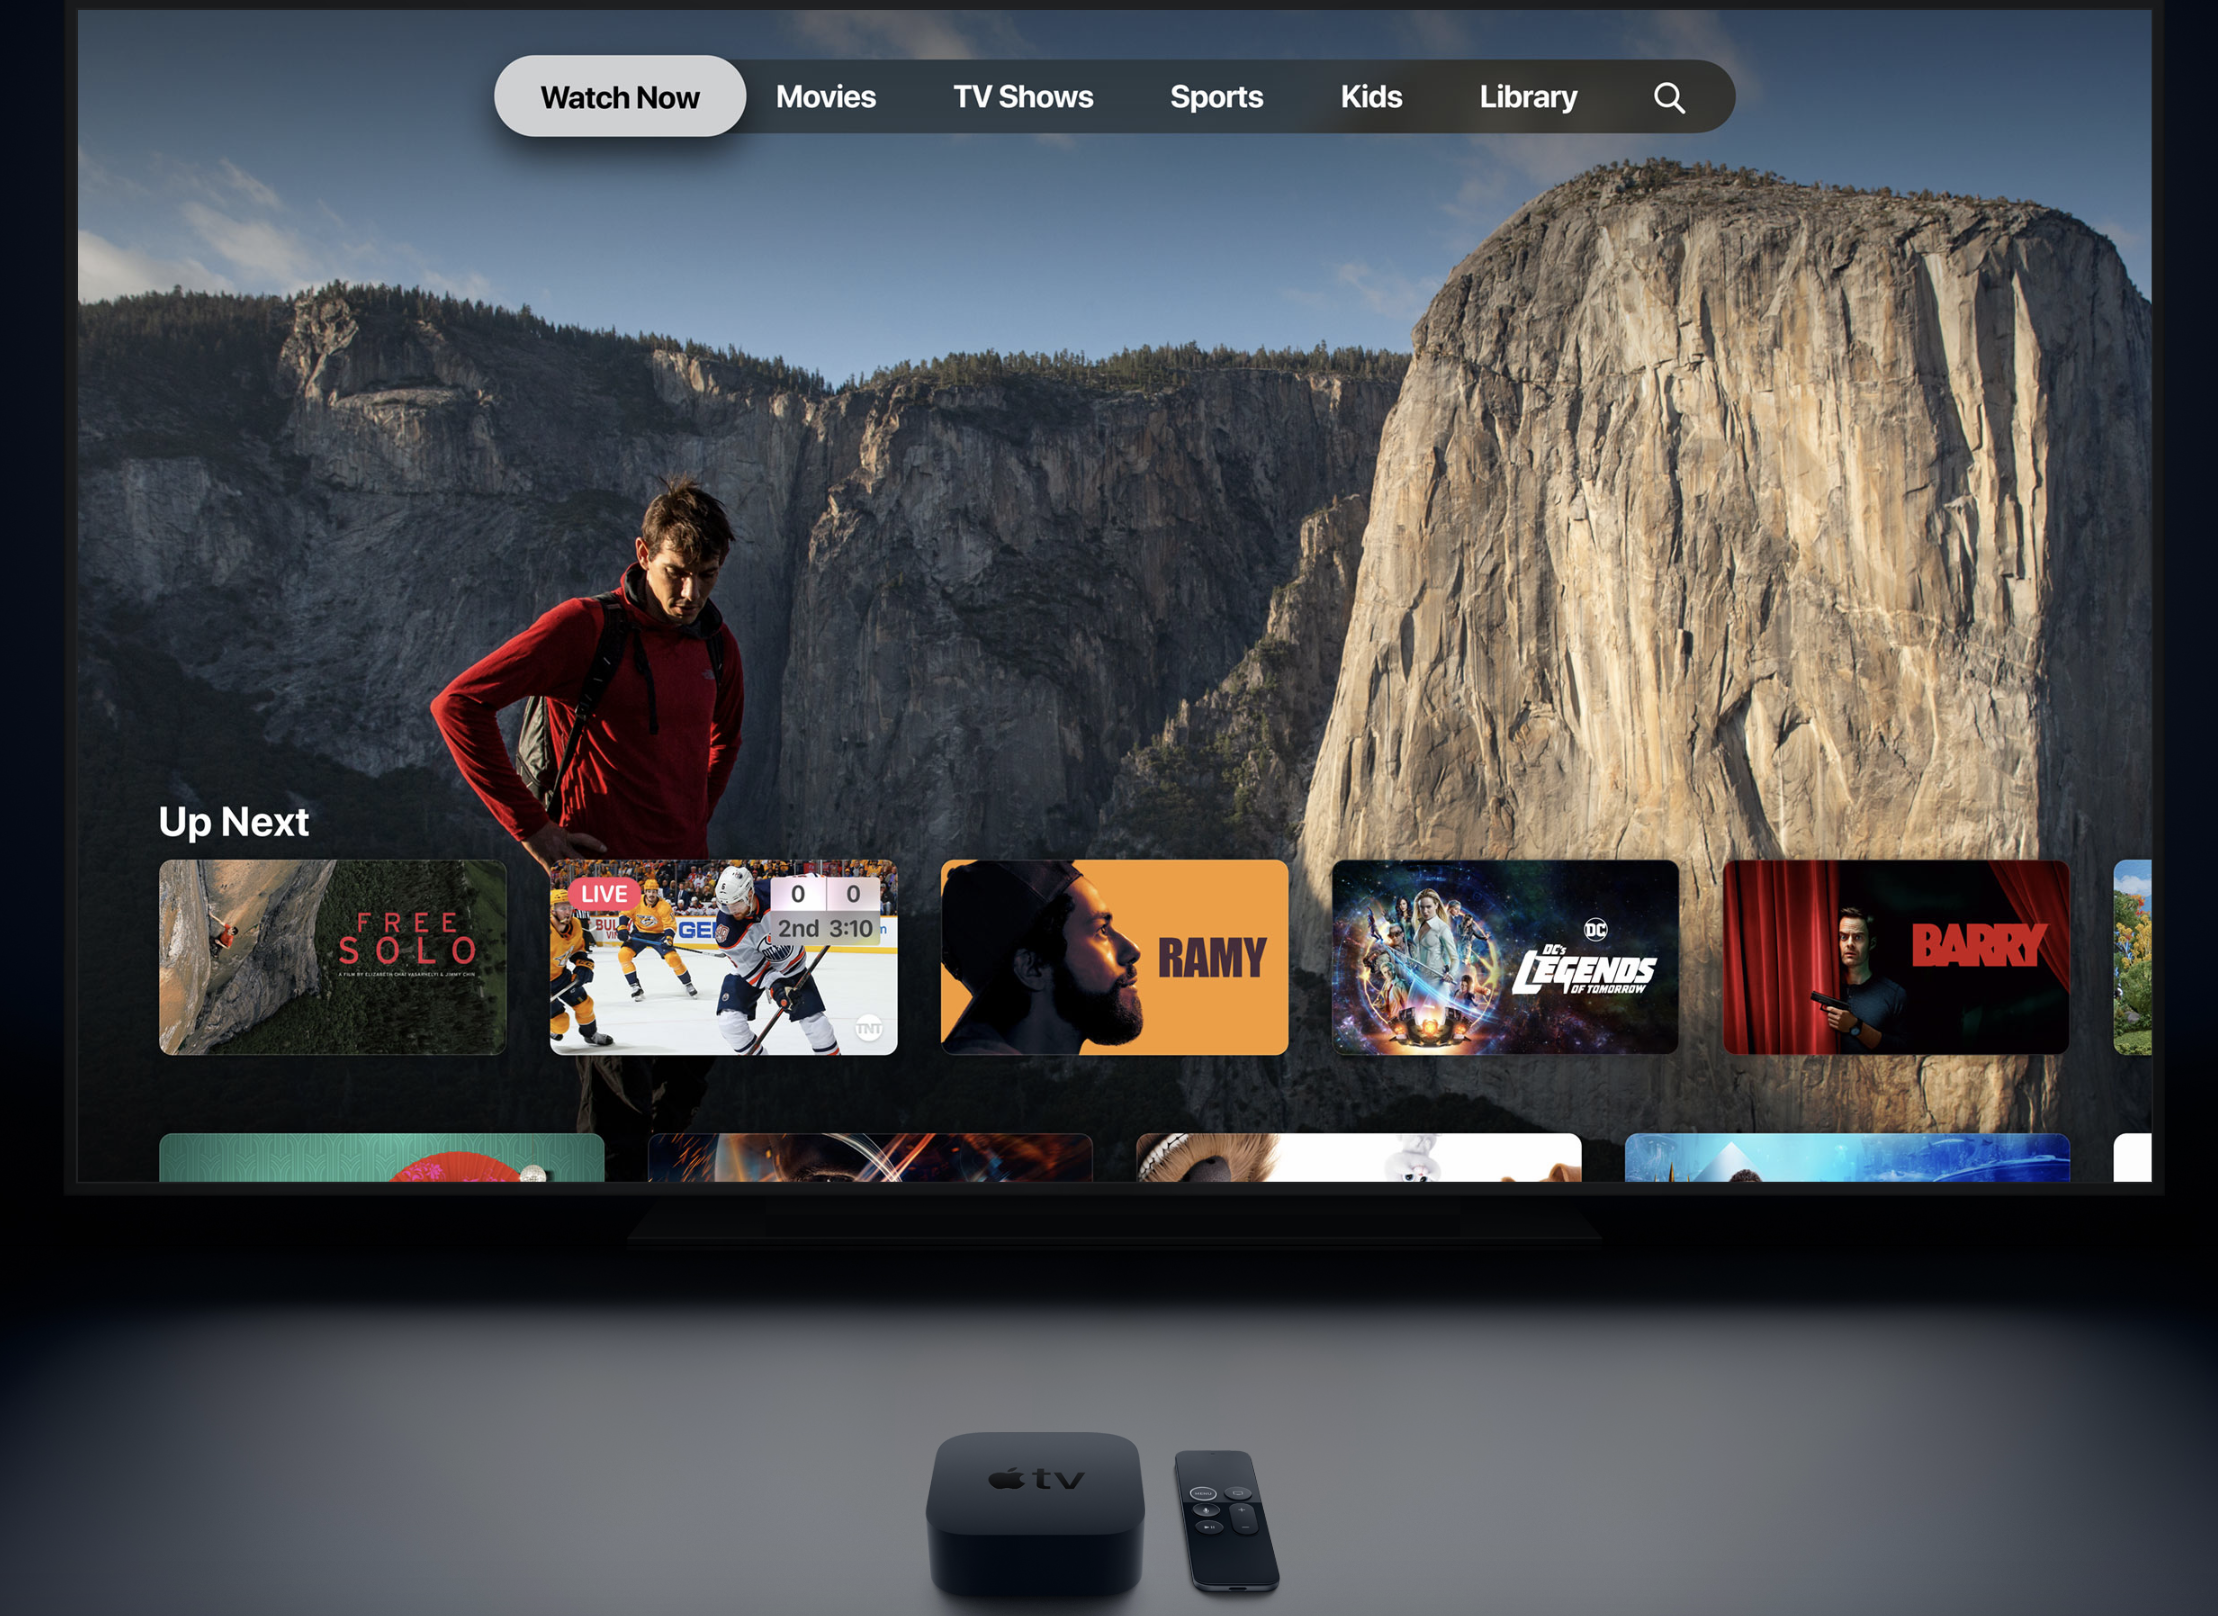 Apple TV is getting a Picture-in-Picture mode so you can watch two